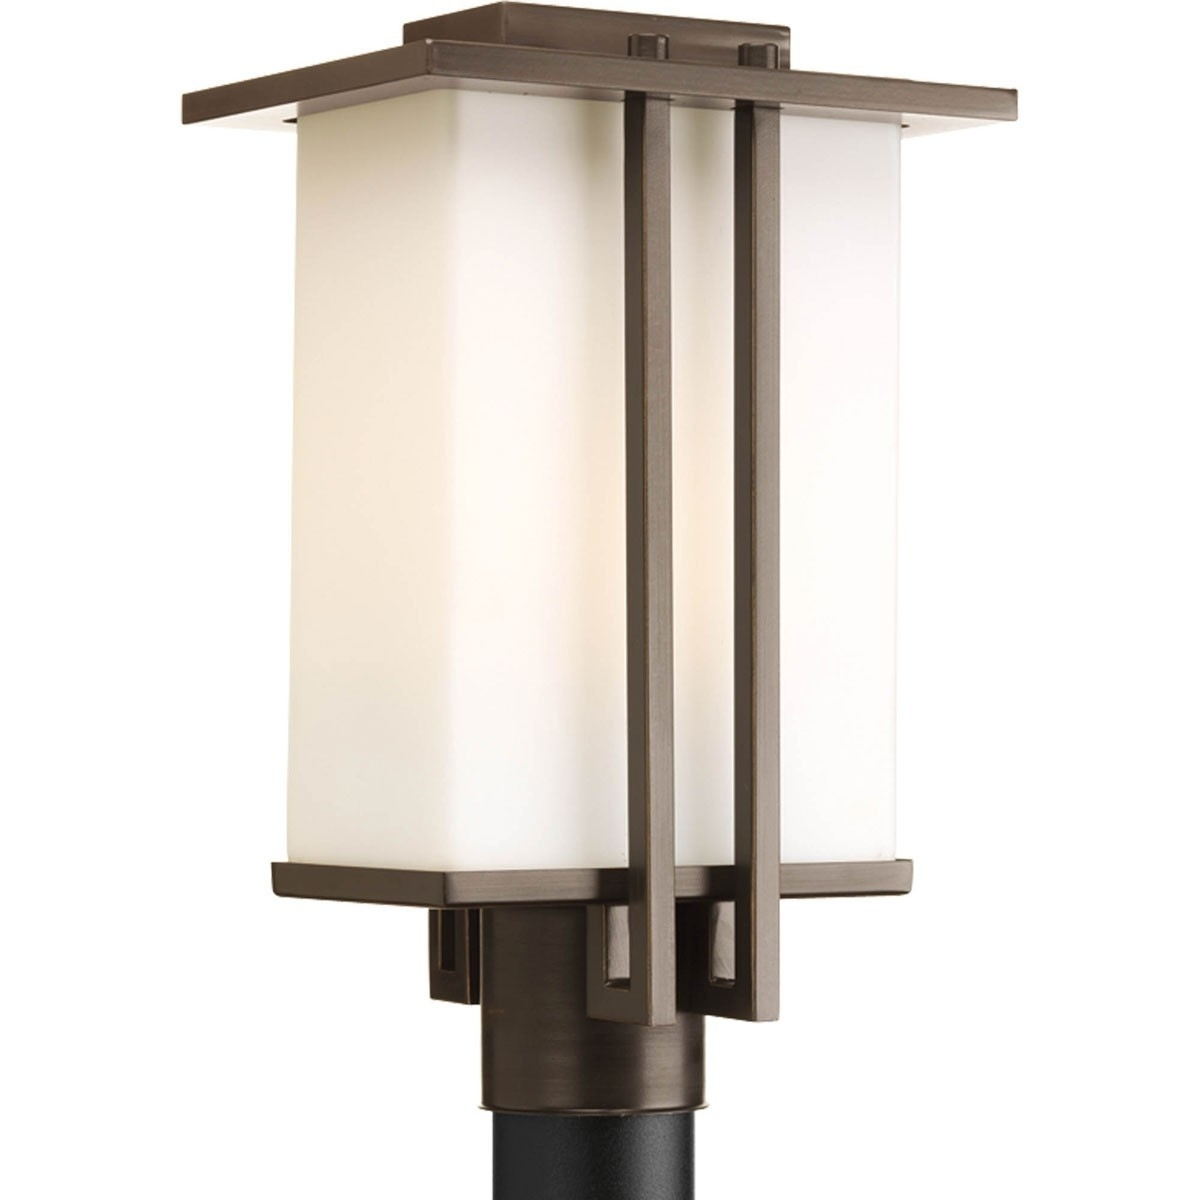 Outdoor Pole Lighting Fixtures Outdoor Pole Lighting Fixtures pertaining to Outdoor Pole Lanterns (Image 16 of 20)